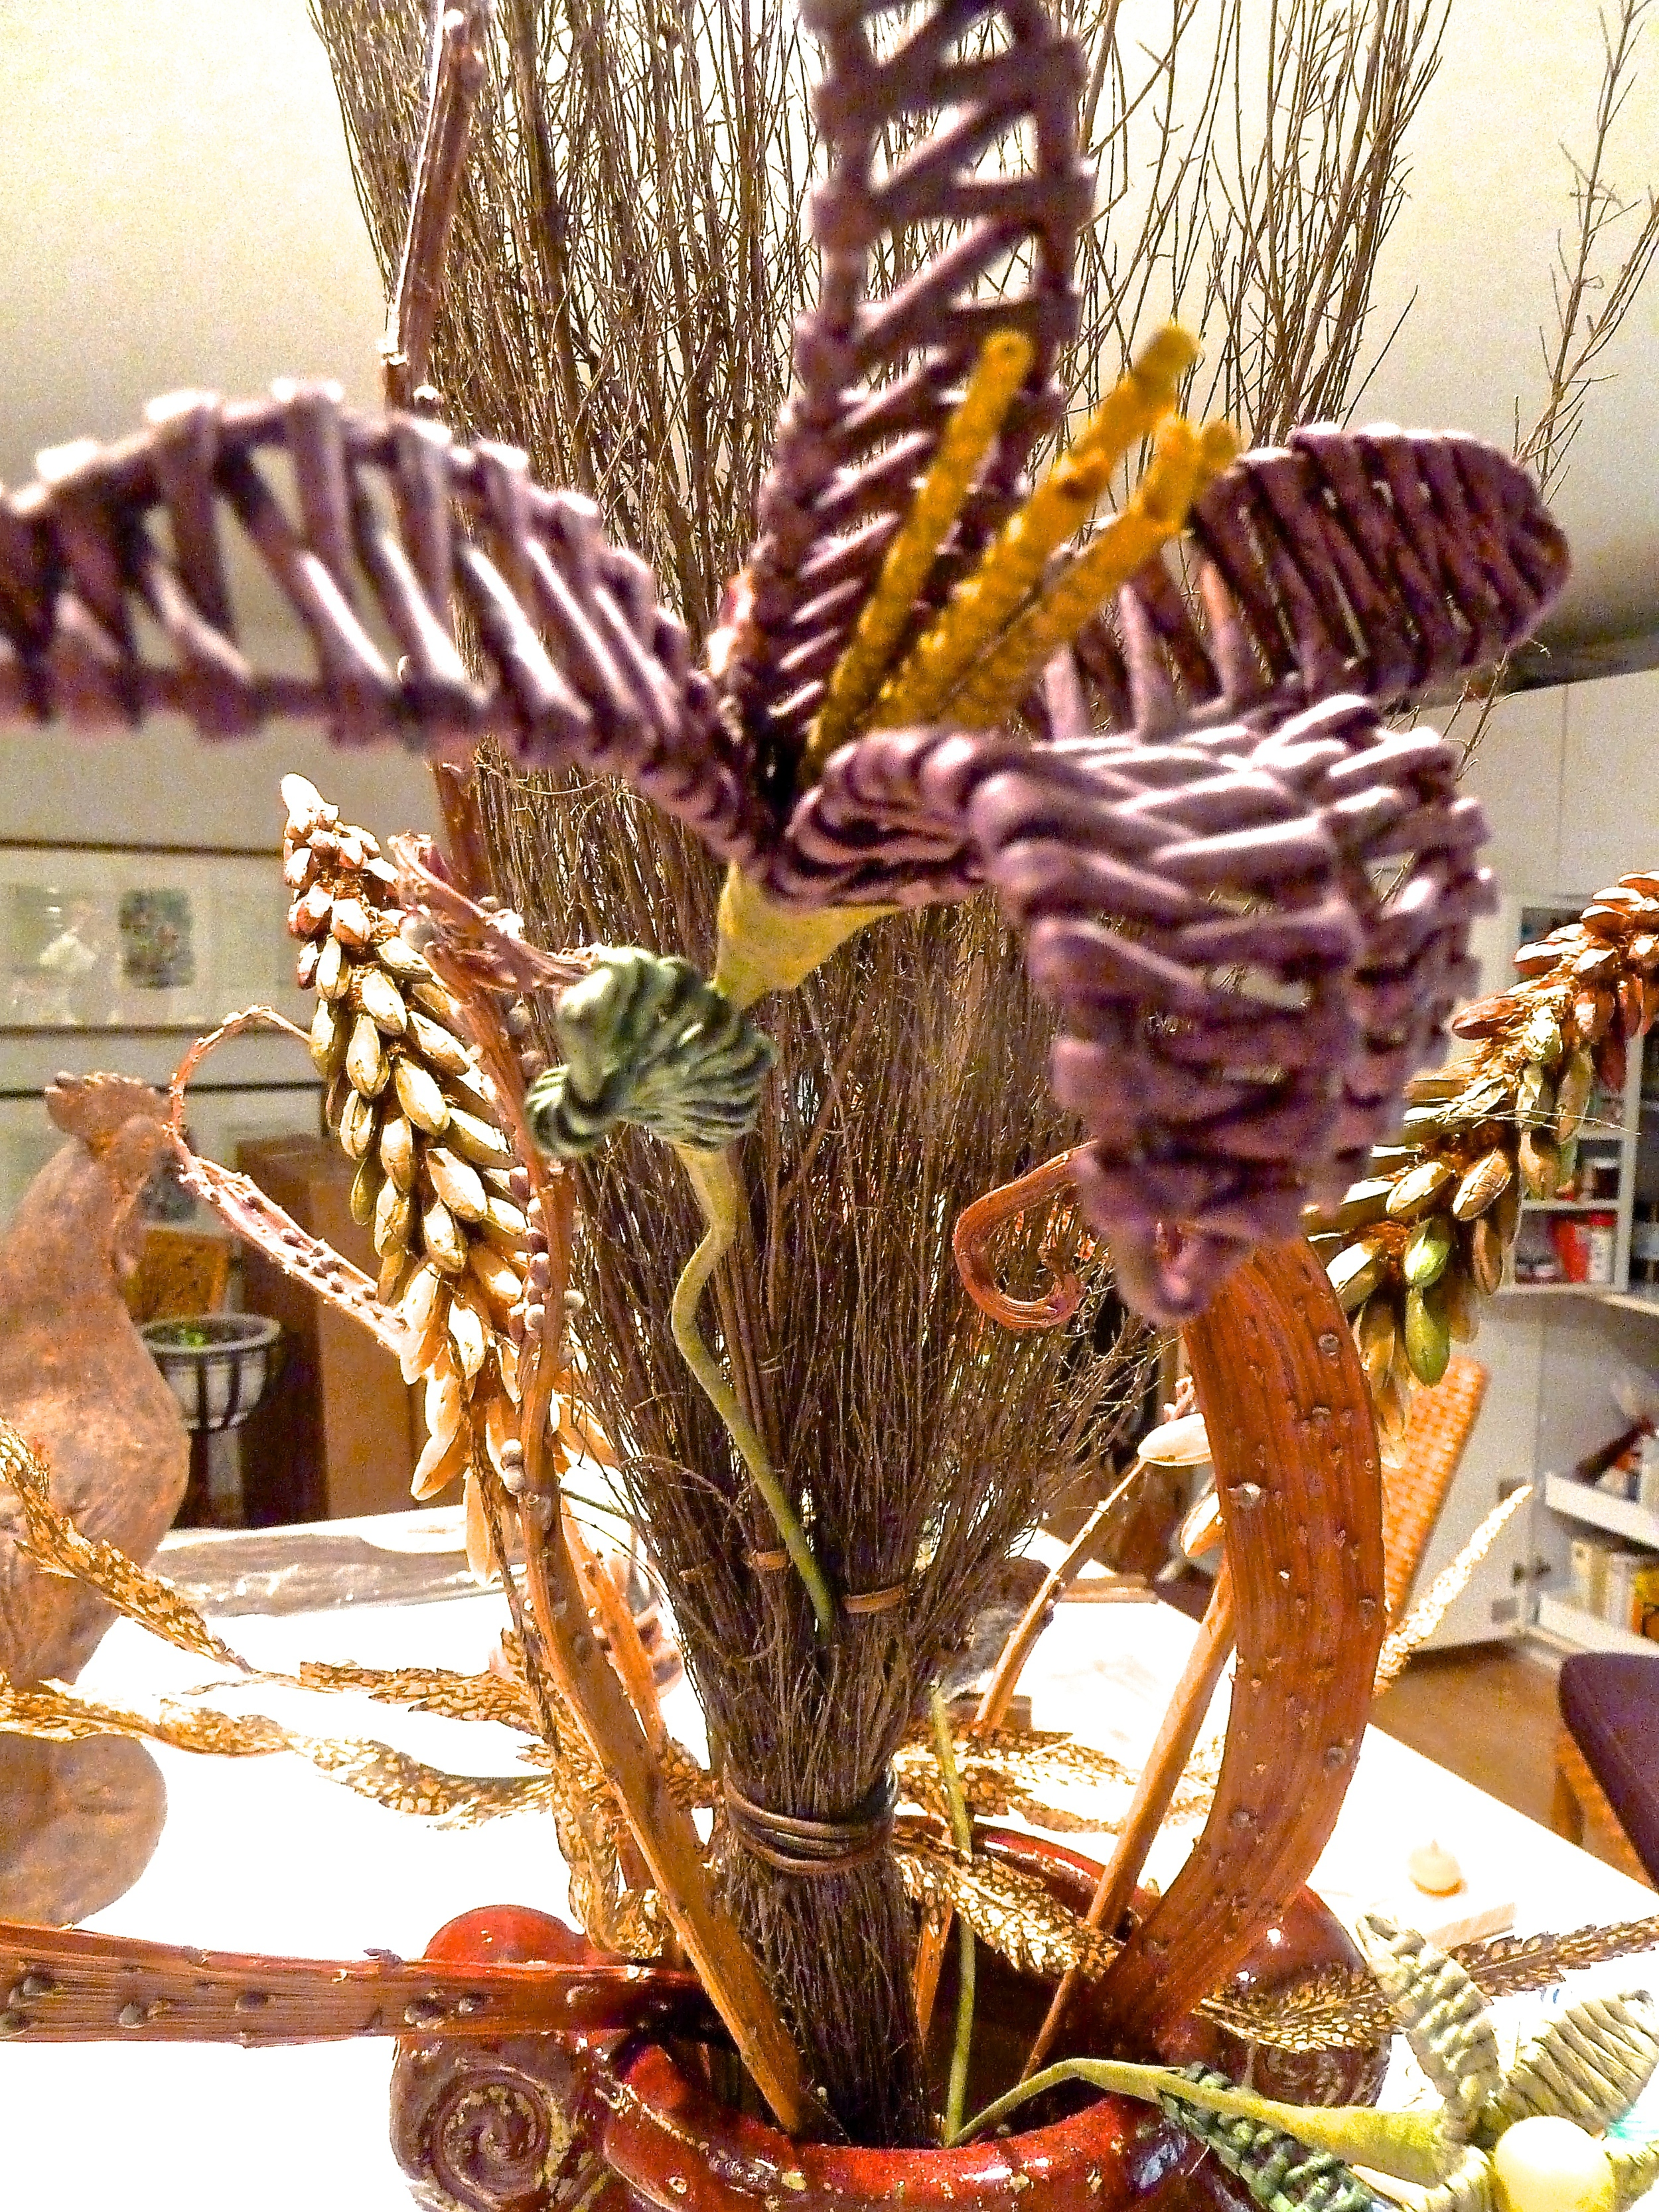 Other flowers can be placed higher up the broom